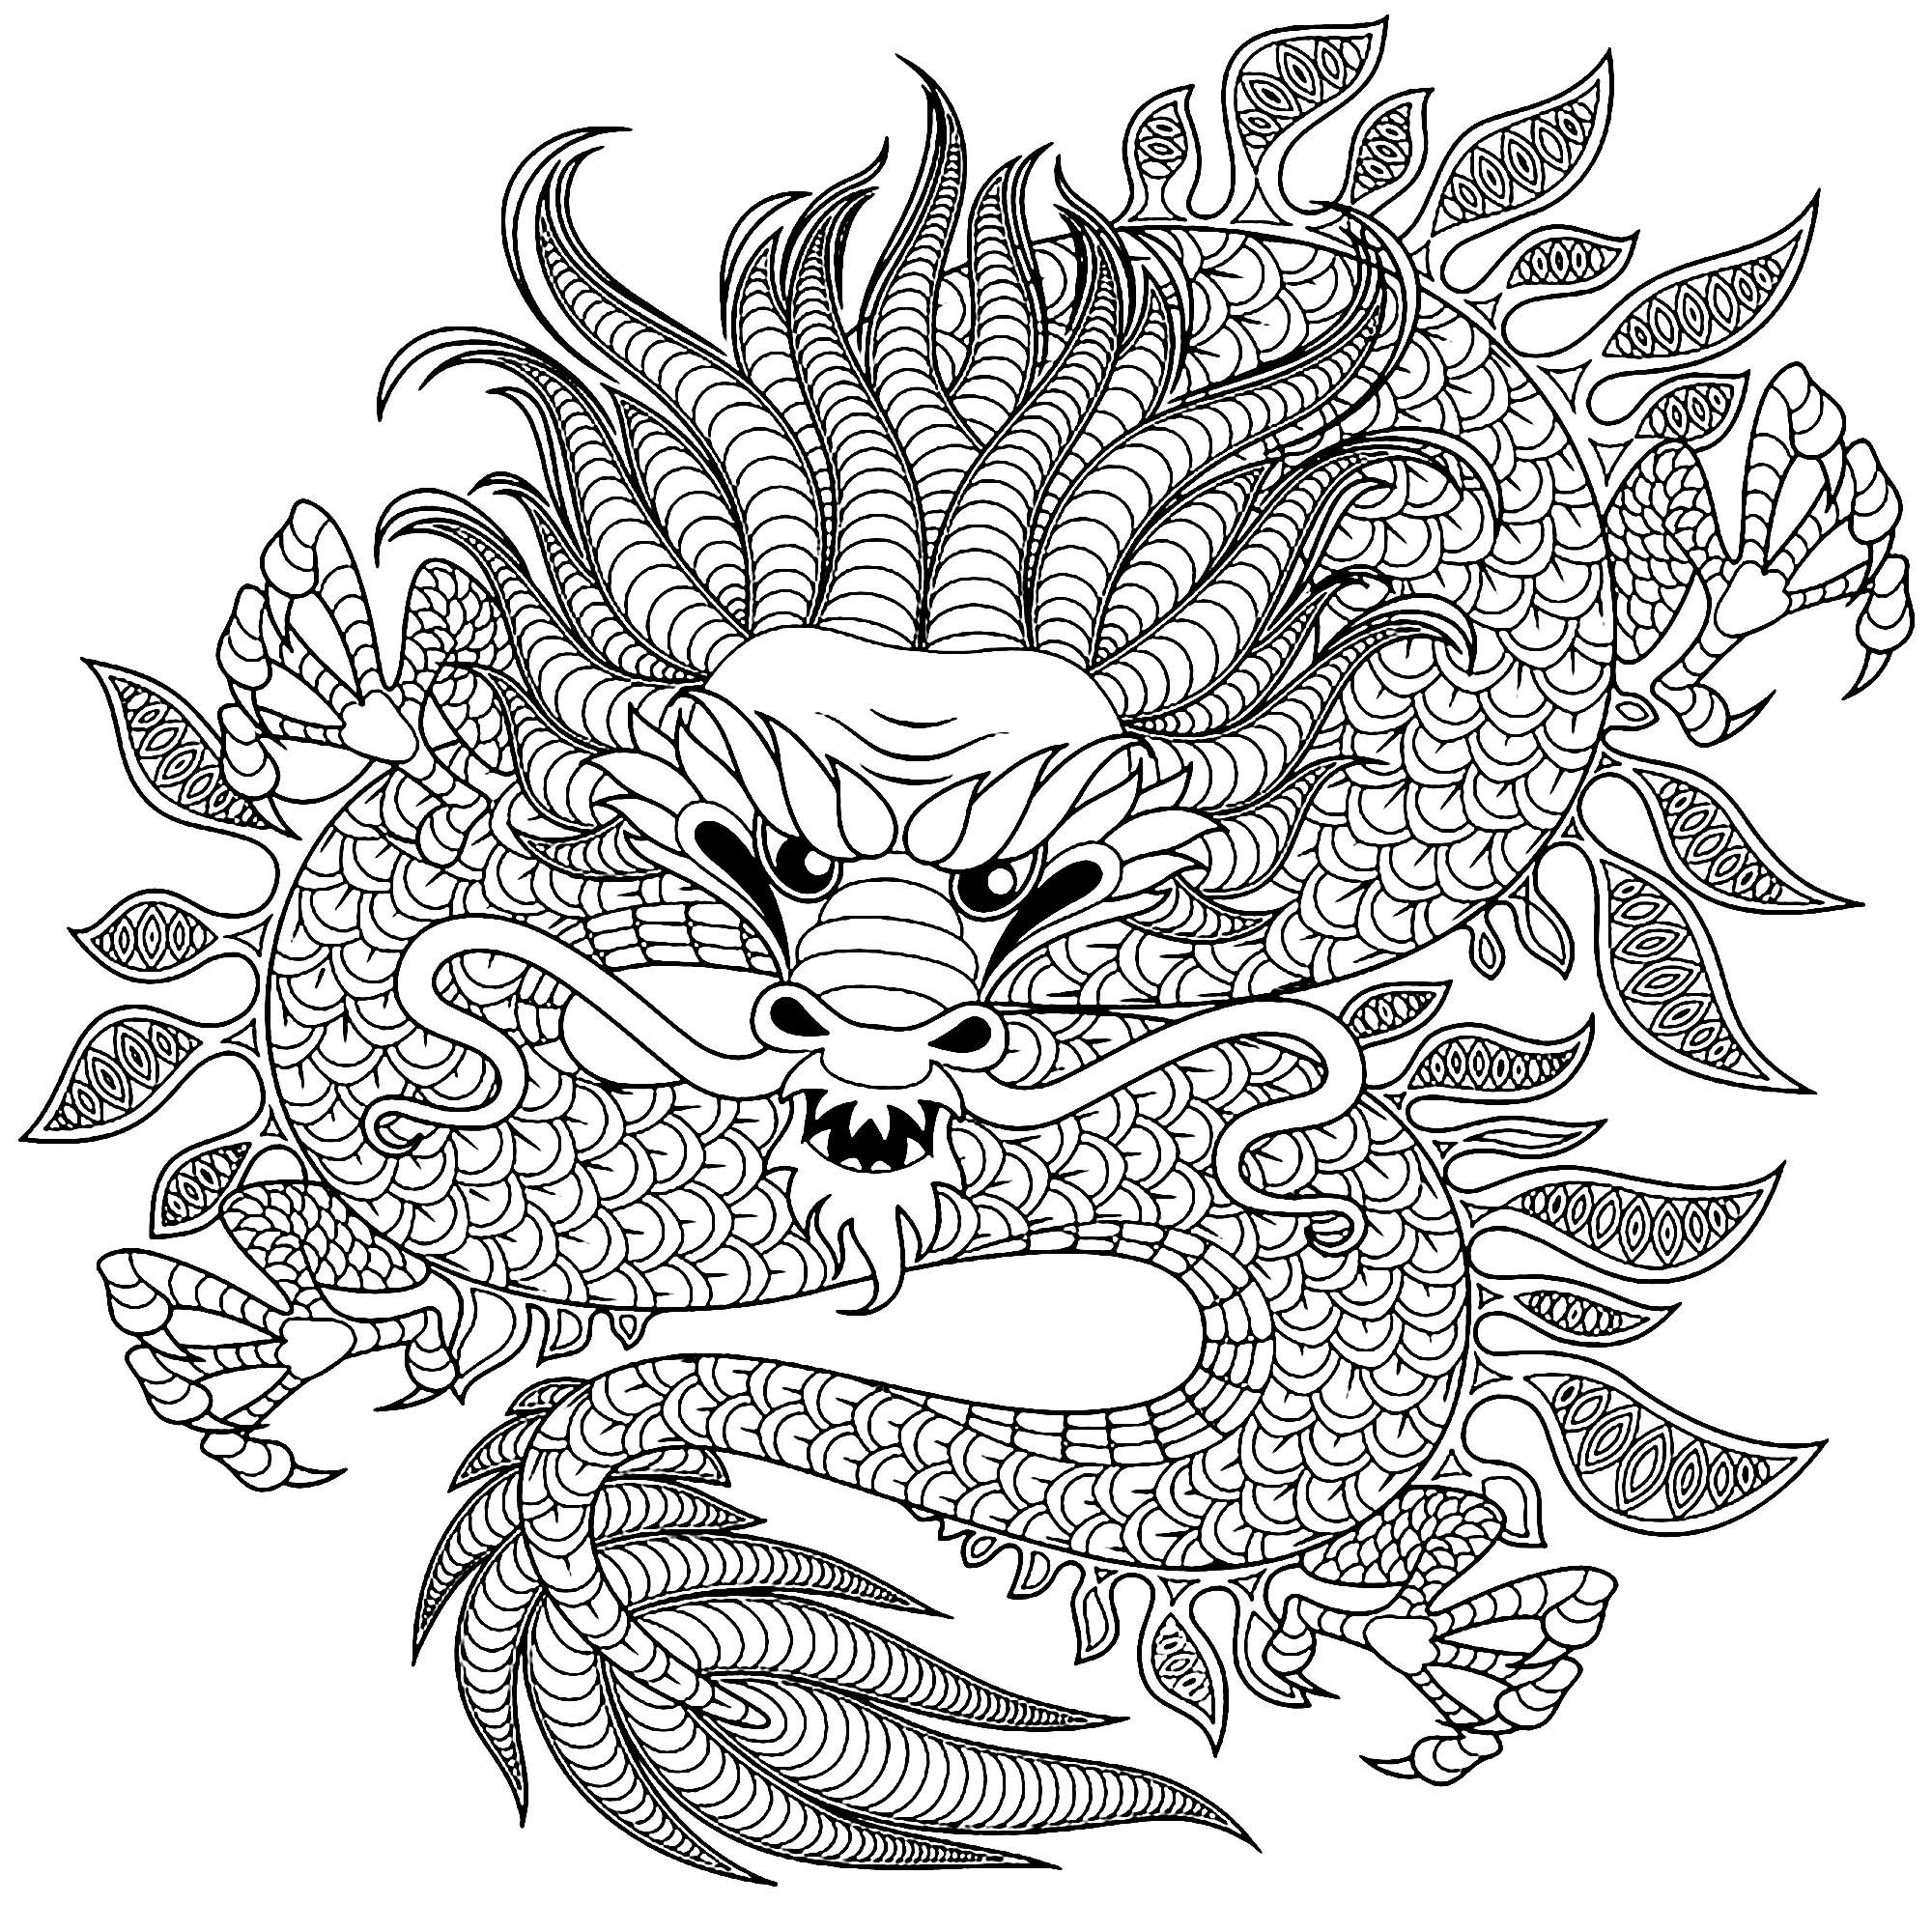 dragon colouring pictures coloring pages dragon coloring pages free and printable pictures dragon colouring